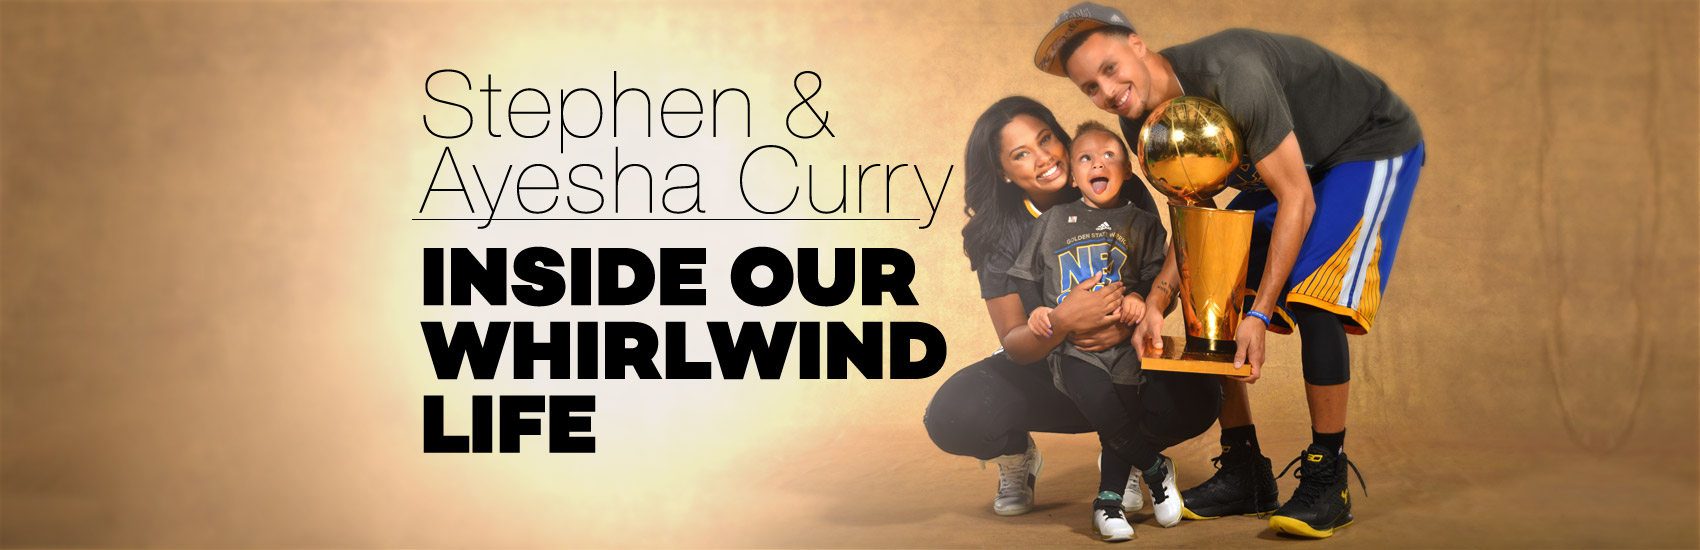 Stephen and Ayesha Curry: Inside Our Whirlwind Life - ABC News